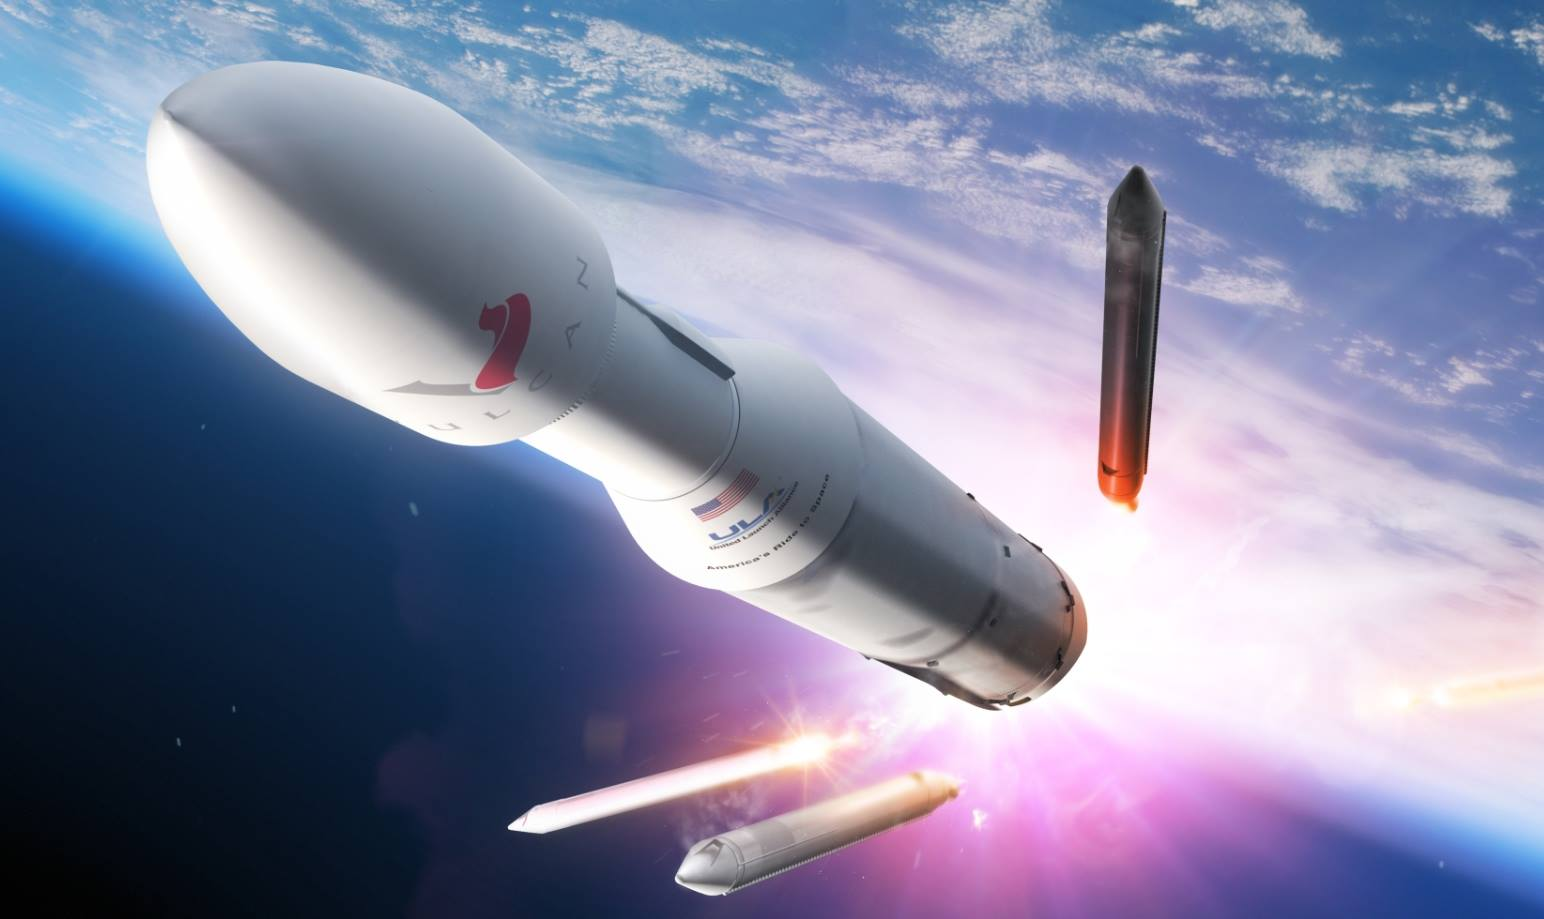 An artist's depiction of the Vulcan rocket rising up from Earth. Image Credit: United Launch Alliance